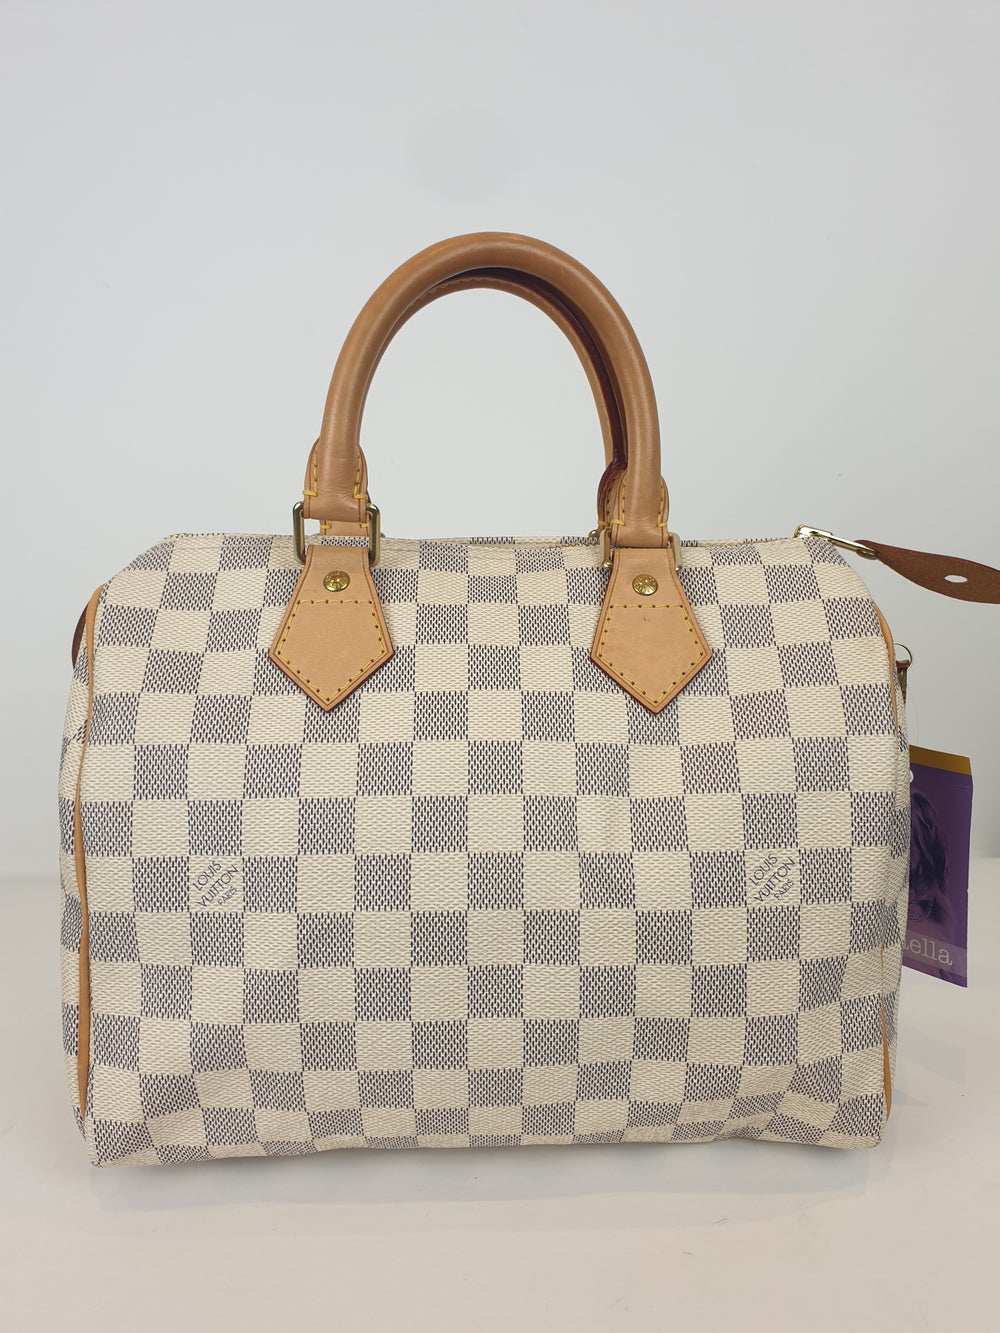 Louis Vuitton Damier Azur Speedy 25 - As Seen on Instagram - Siopaella Designer Exchange